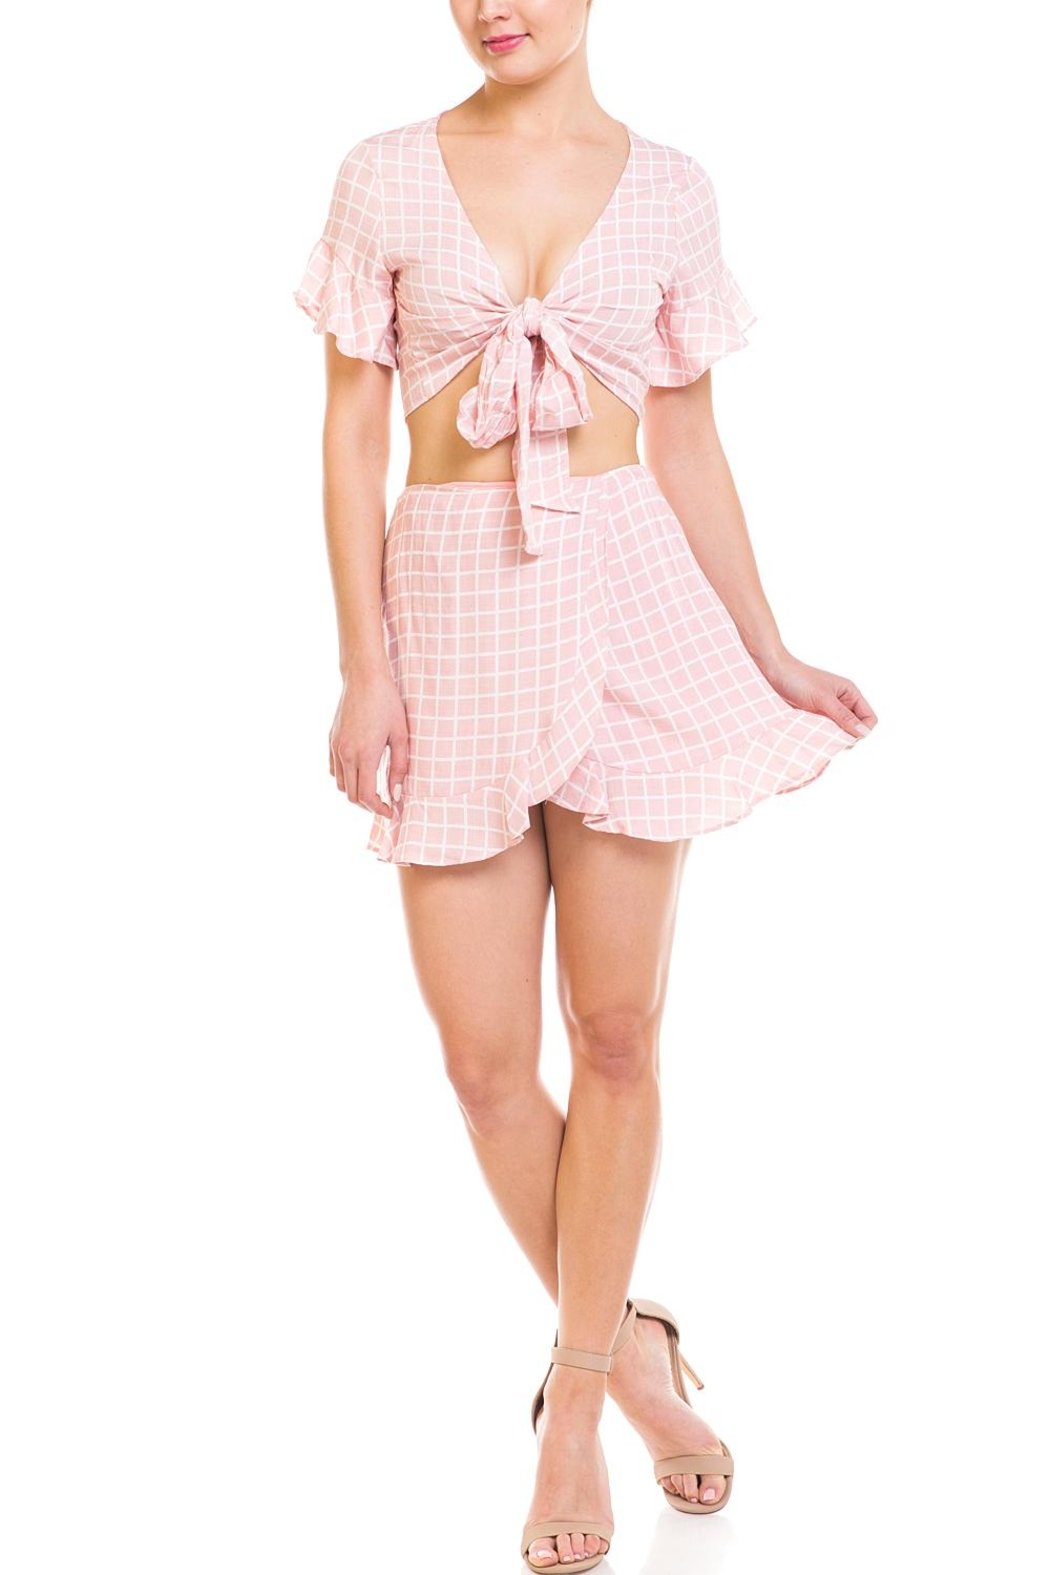 2ab01ac93 Emory Park Checkered Tie Skirt-Set from New York by Dor L'Dor ...